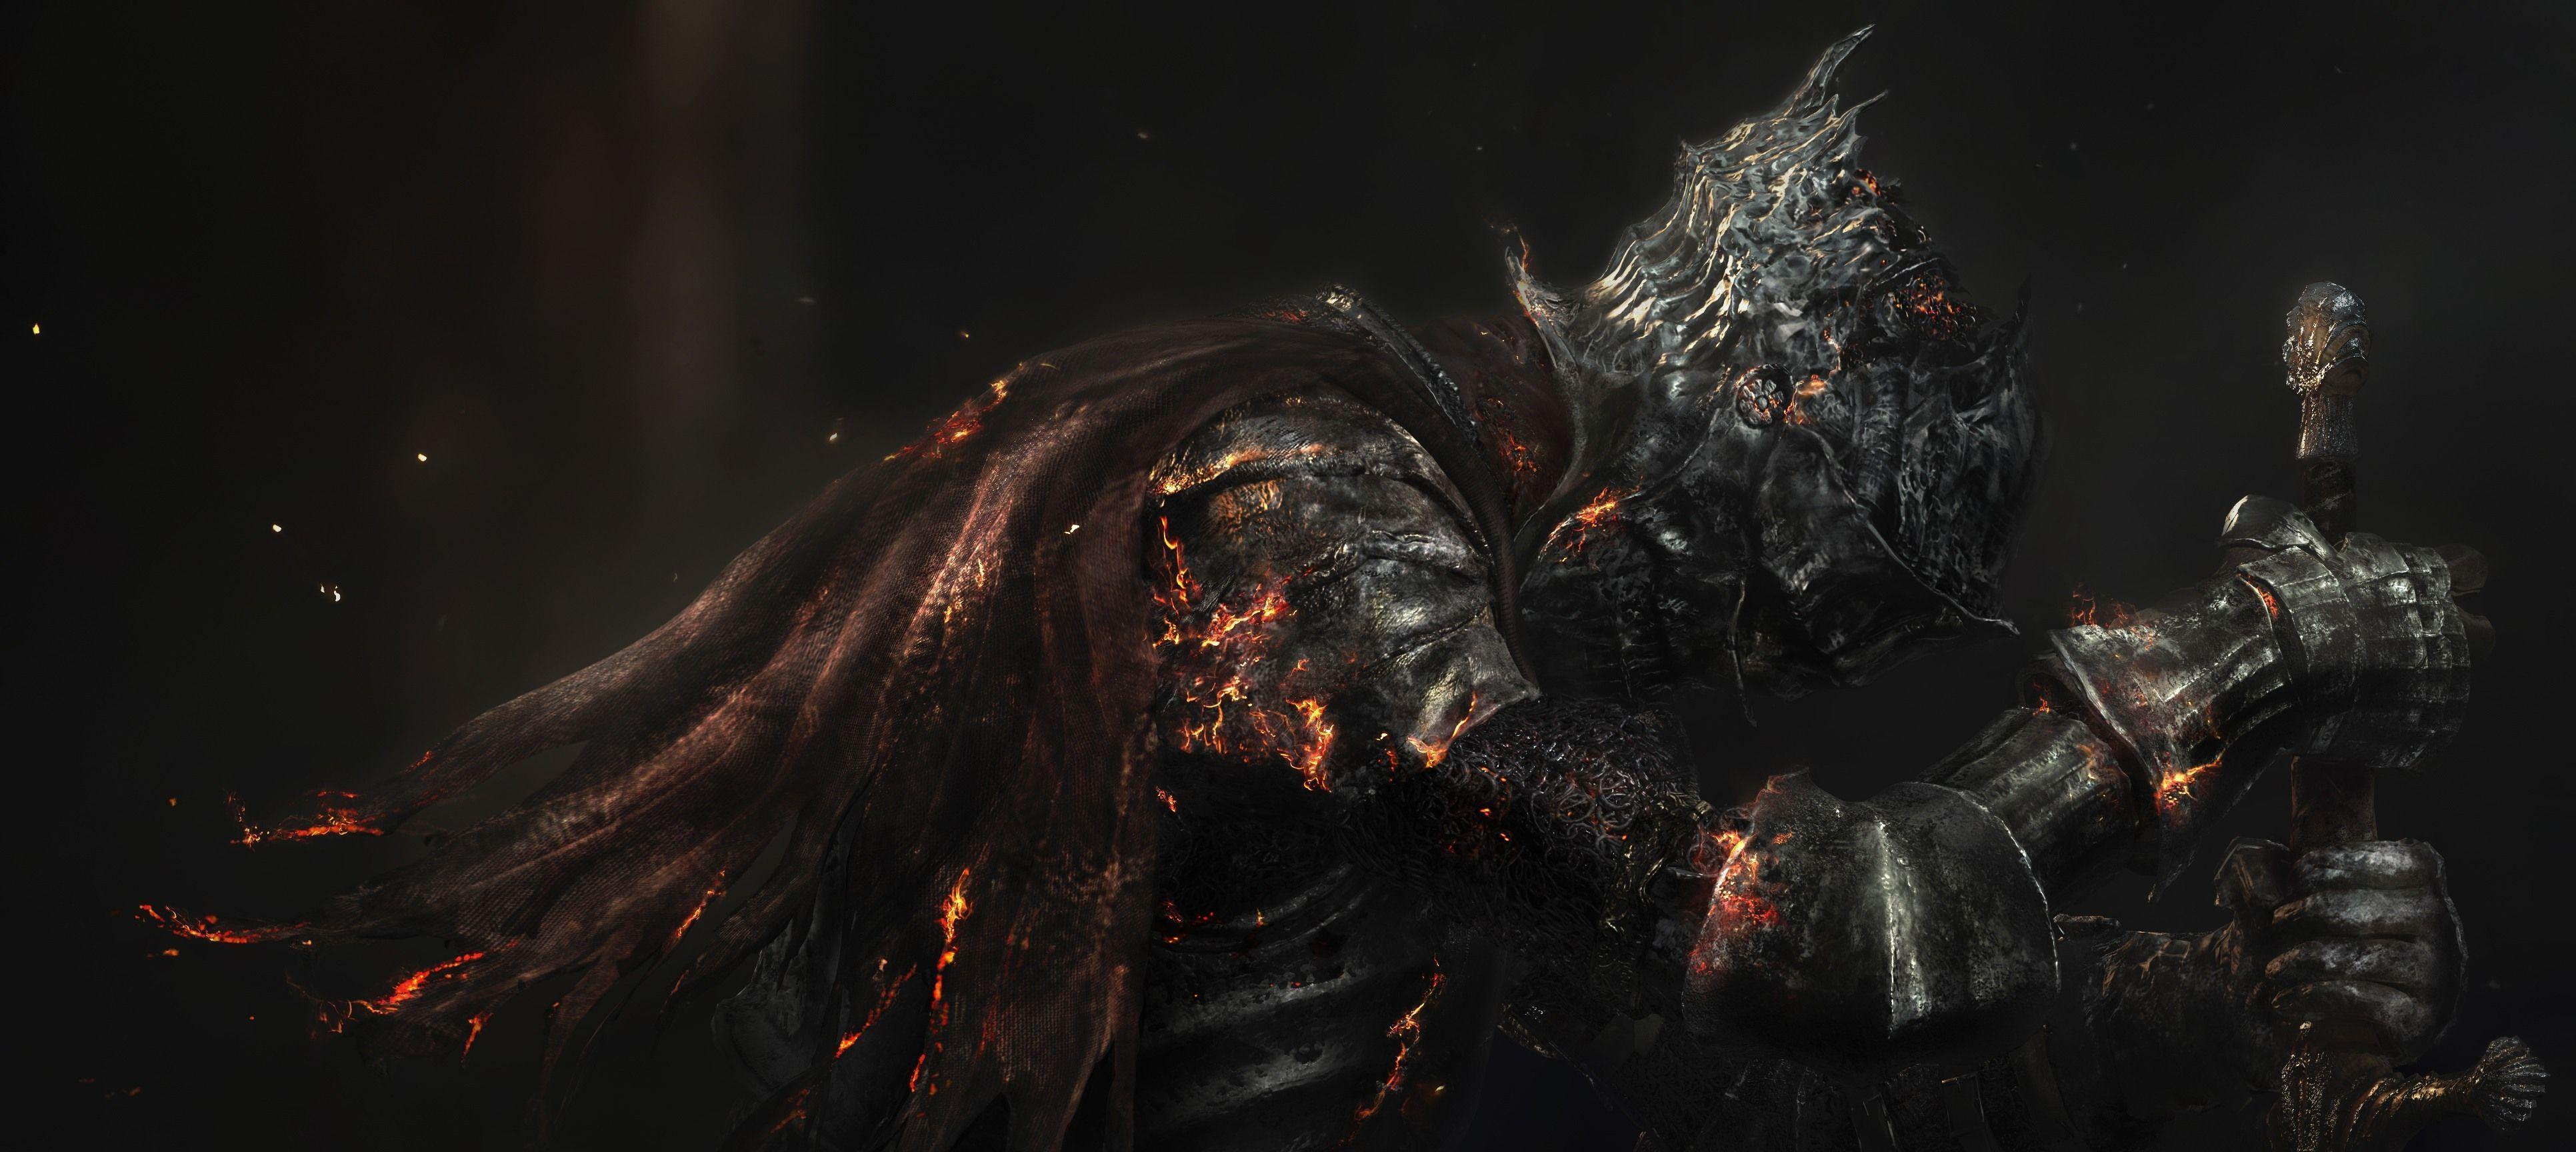 Dark Souls 3 Wallpapers Wallpaper Cave